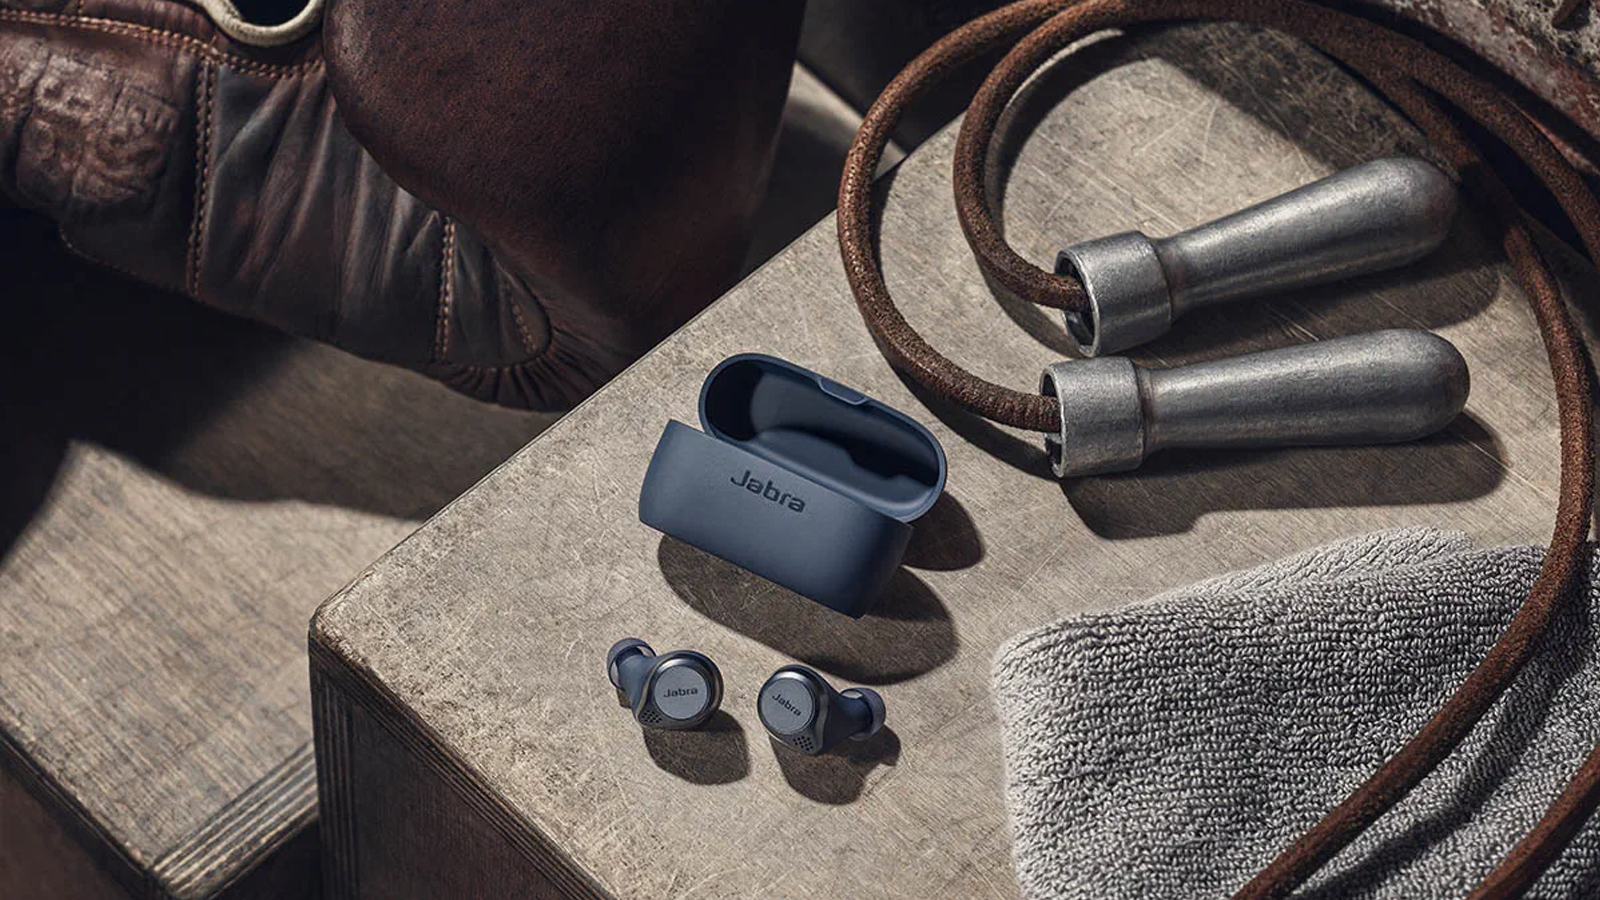 Jabra Elite Active 75t earbuds next to open case in boxing gym setting